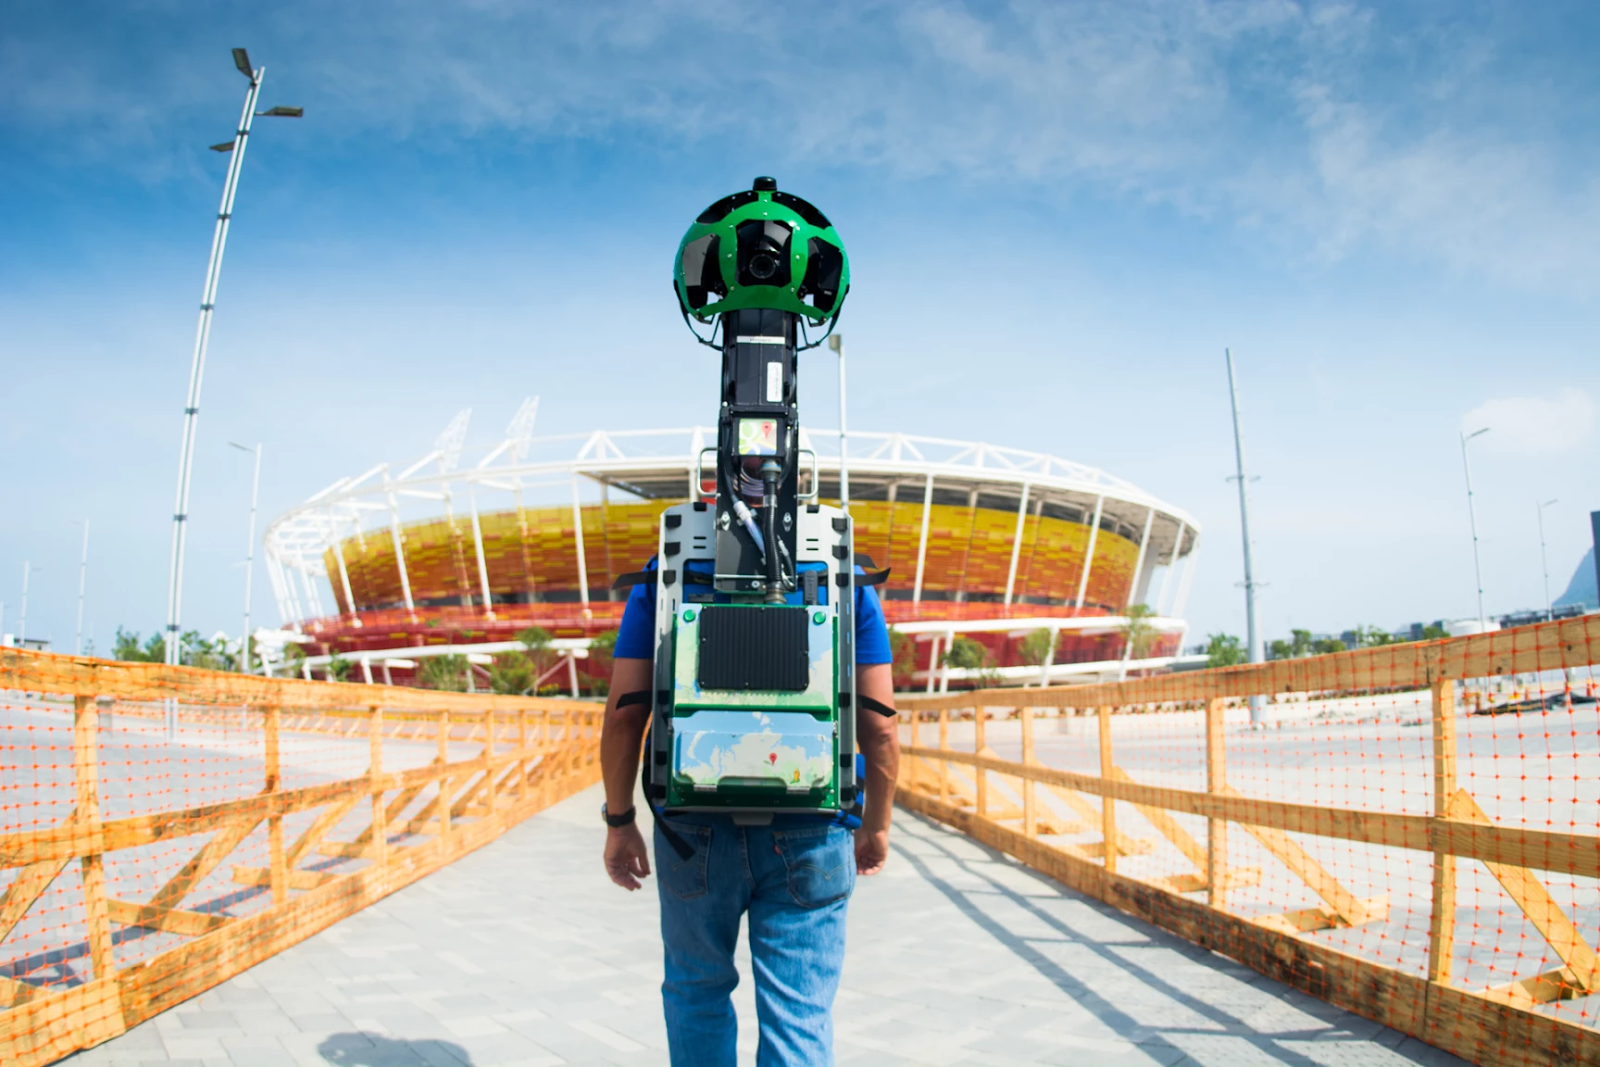 Google Trekker operator captures 360-degree imagery from inside Rio's Olympic Park